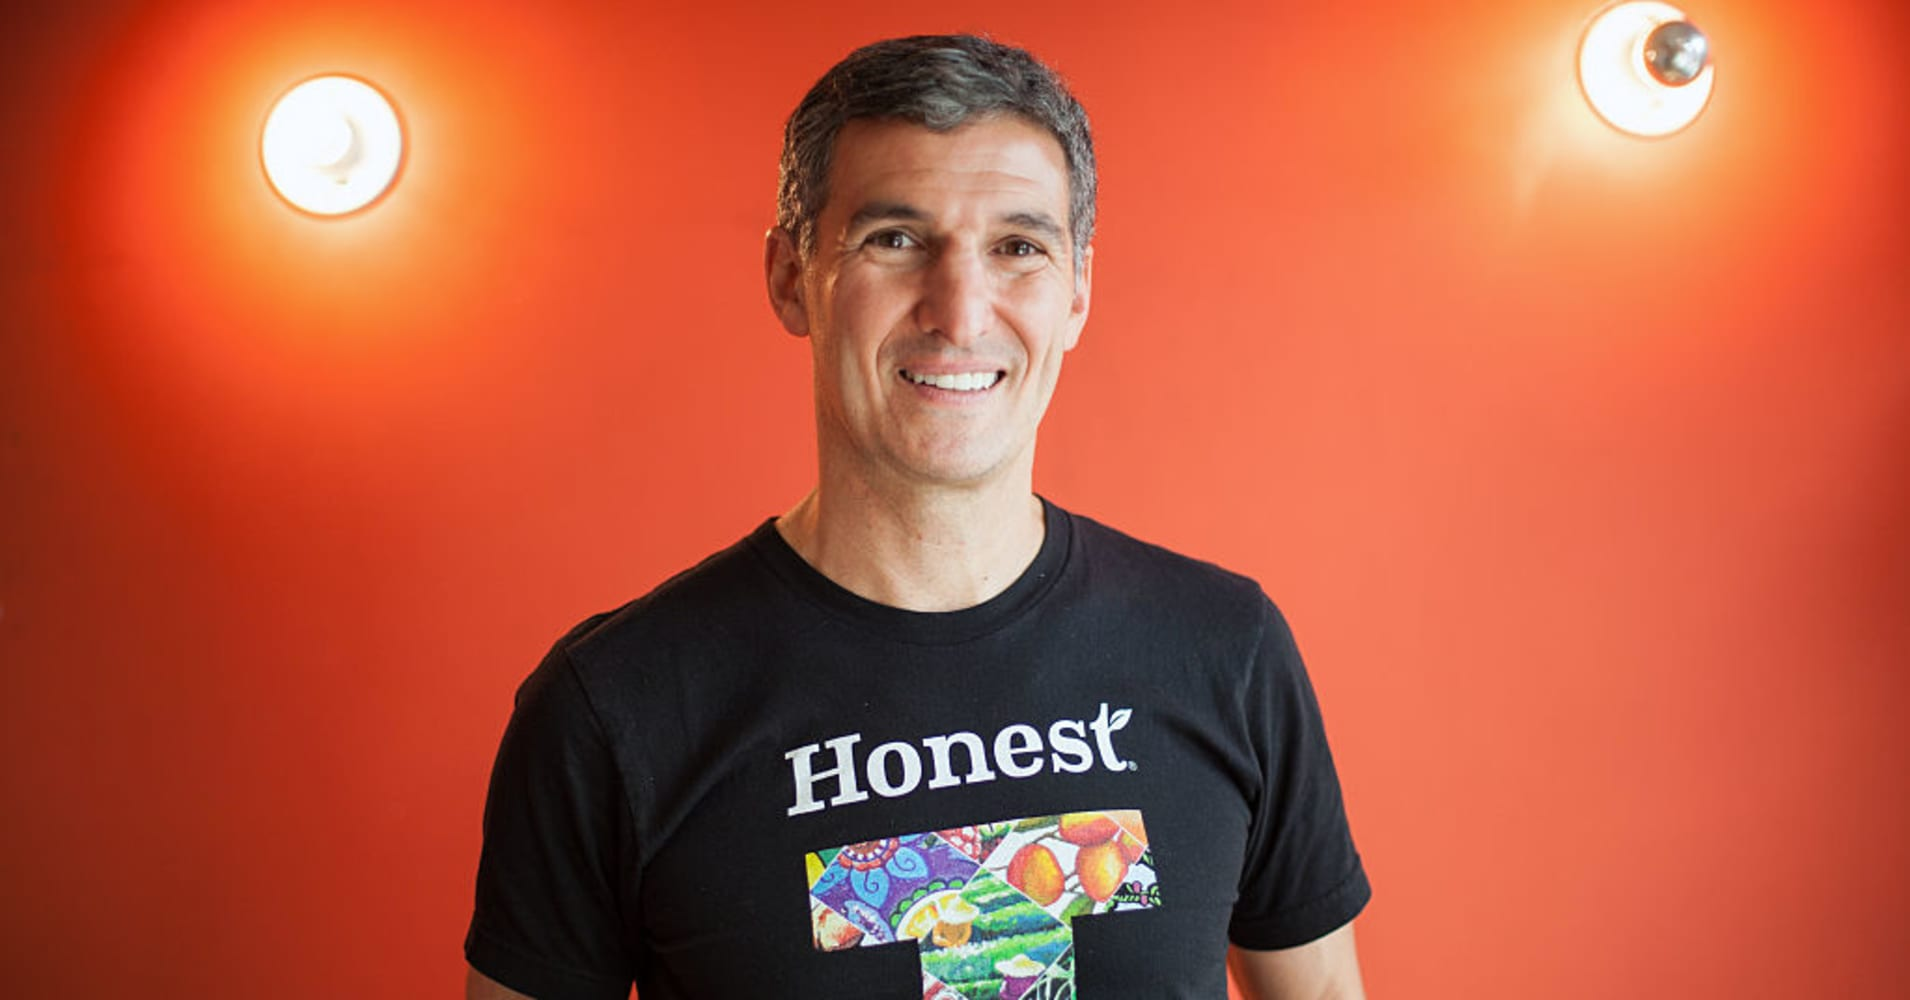 Seth Goldman, Co-Founder of Honest Tea.